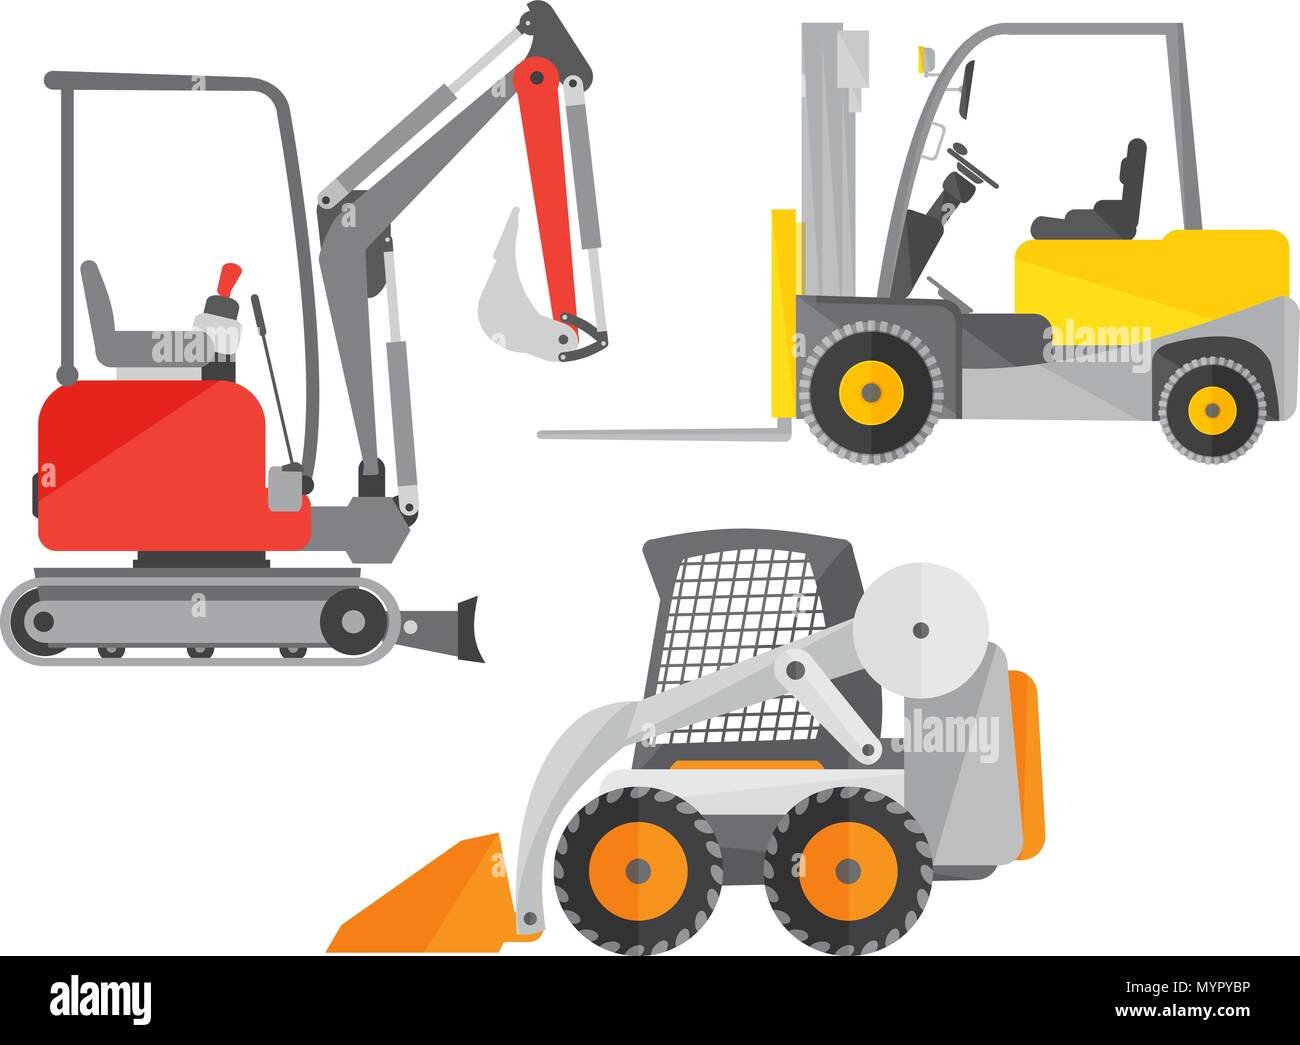 [ANLQ_8698]  Schematic illustration of two mini tractors or excavators and one mini  forklift truck Stock Vector Image & Art - Alamy | Forklift Schematic |  | Alamy